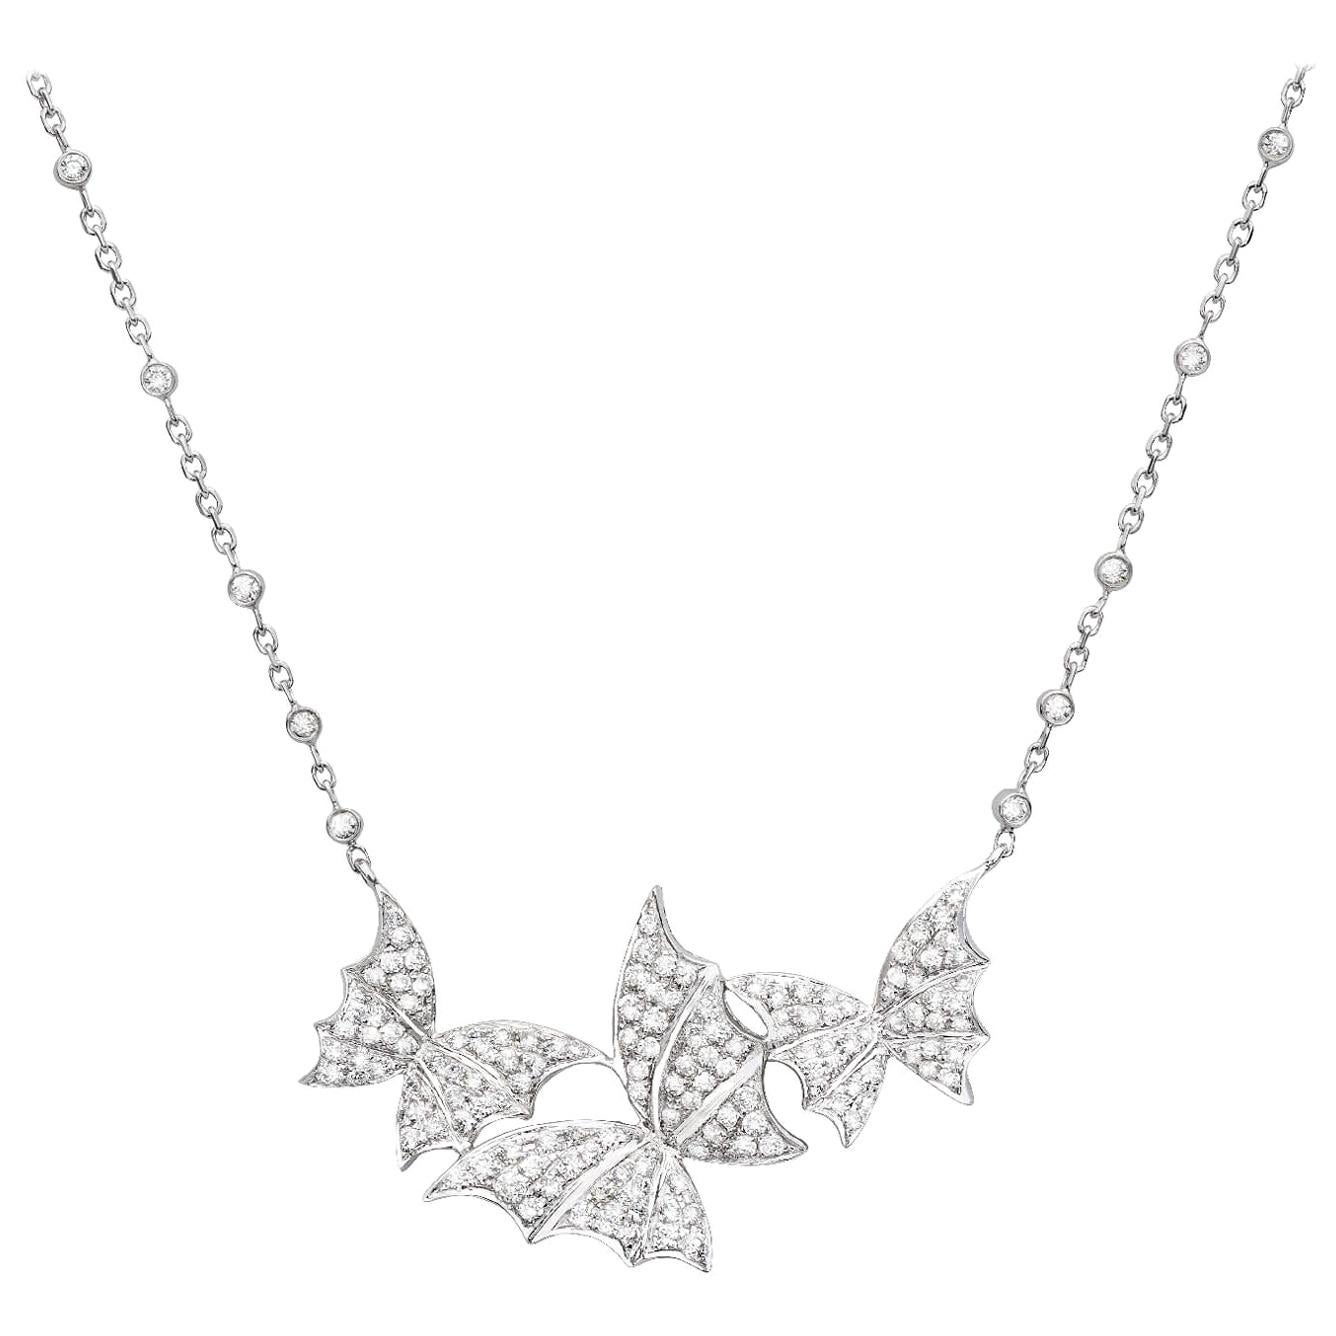 Stephen Webster Fly by Night White Gold and White Diamond Pavé Triple Necklace